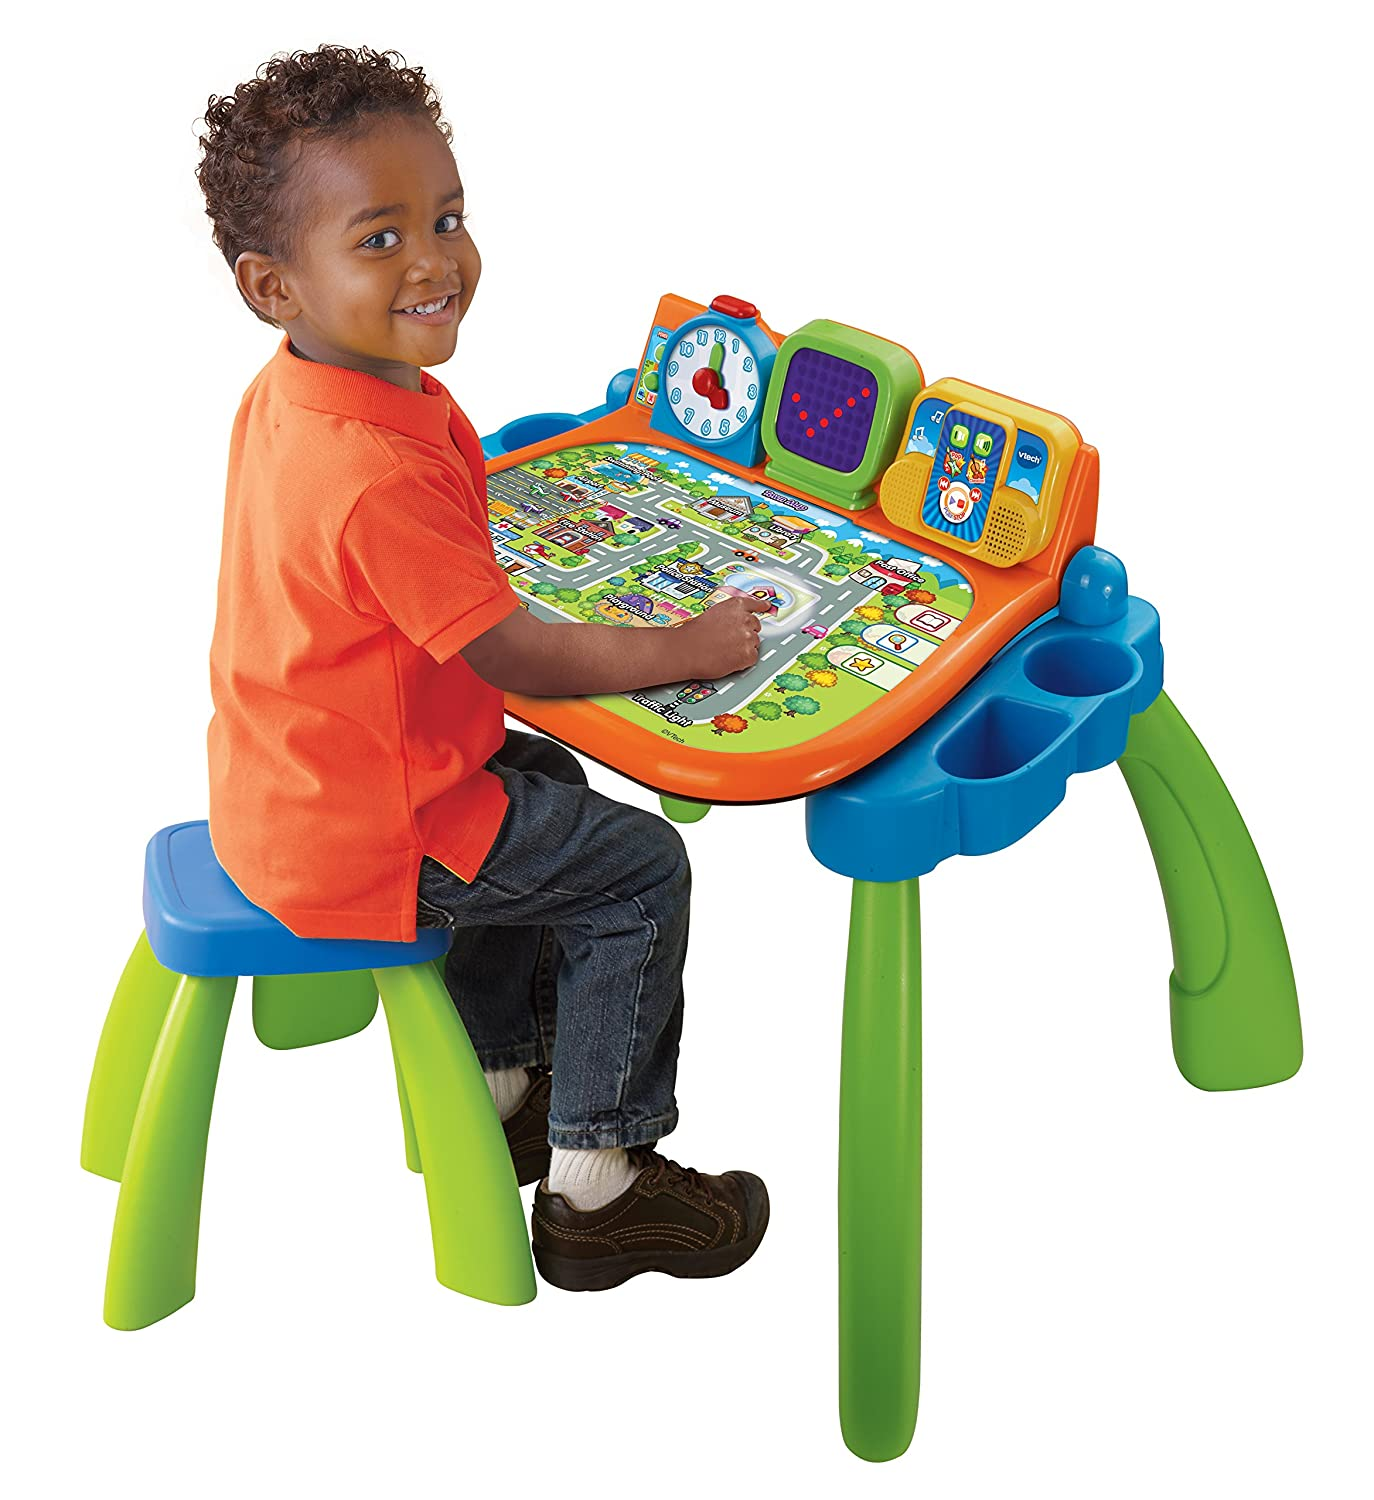 VTech Touch and Learn Activity Desk VTech Amazon Toys & Games